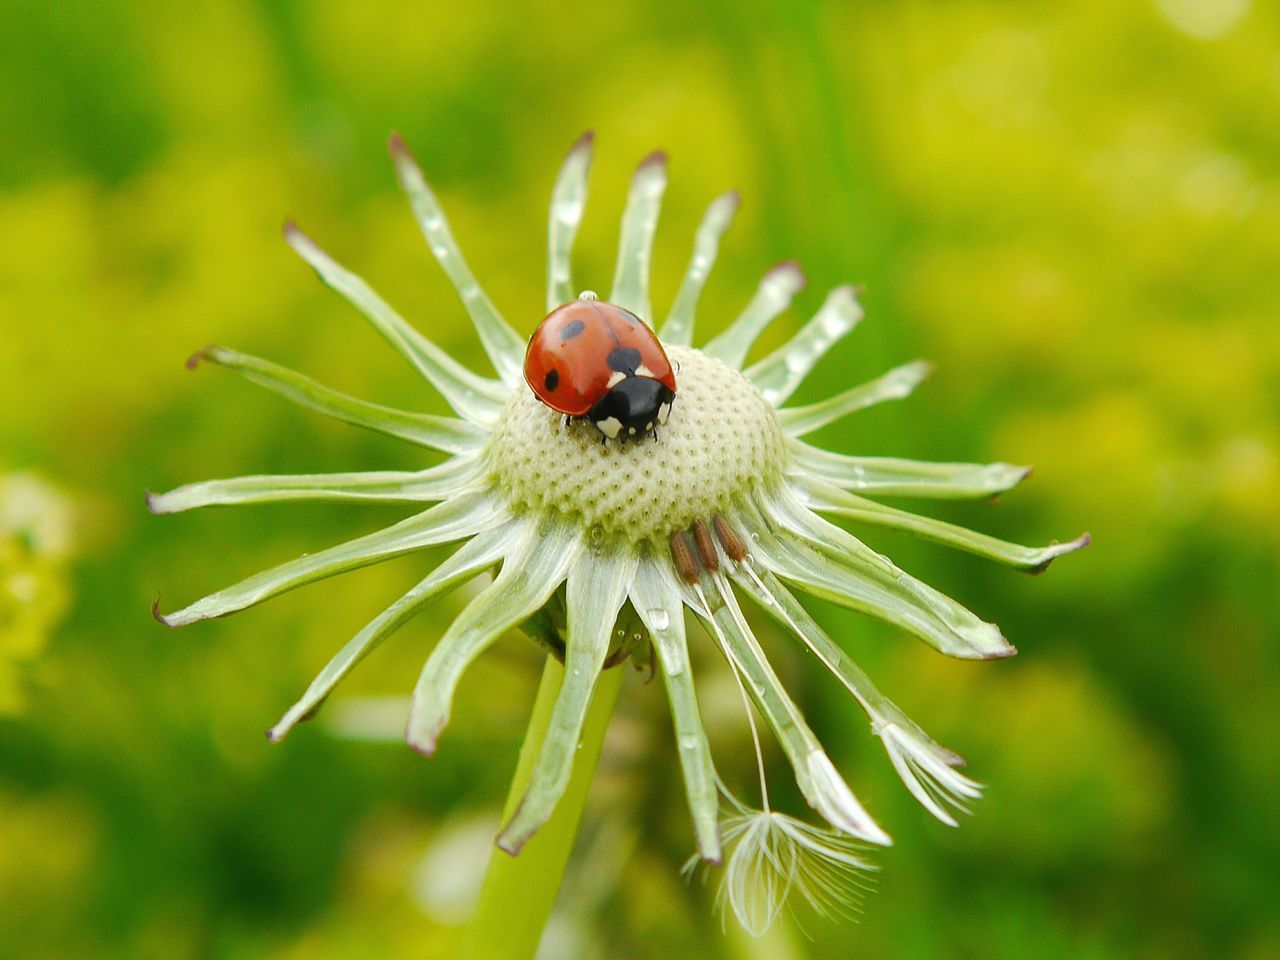 Little ladybug... Flower Nature Insect Plant Close-up Animal Wildlife One Animal Social Issues Uncultivated Focus On Foreground Animals In The Wild Outdoors No People Fragility Day Springtime Green Color Closing Multi Colored Flower Head